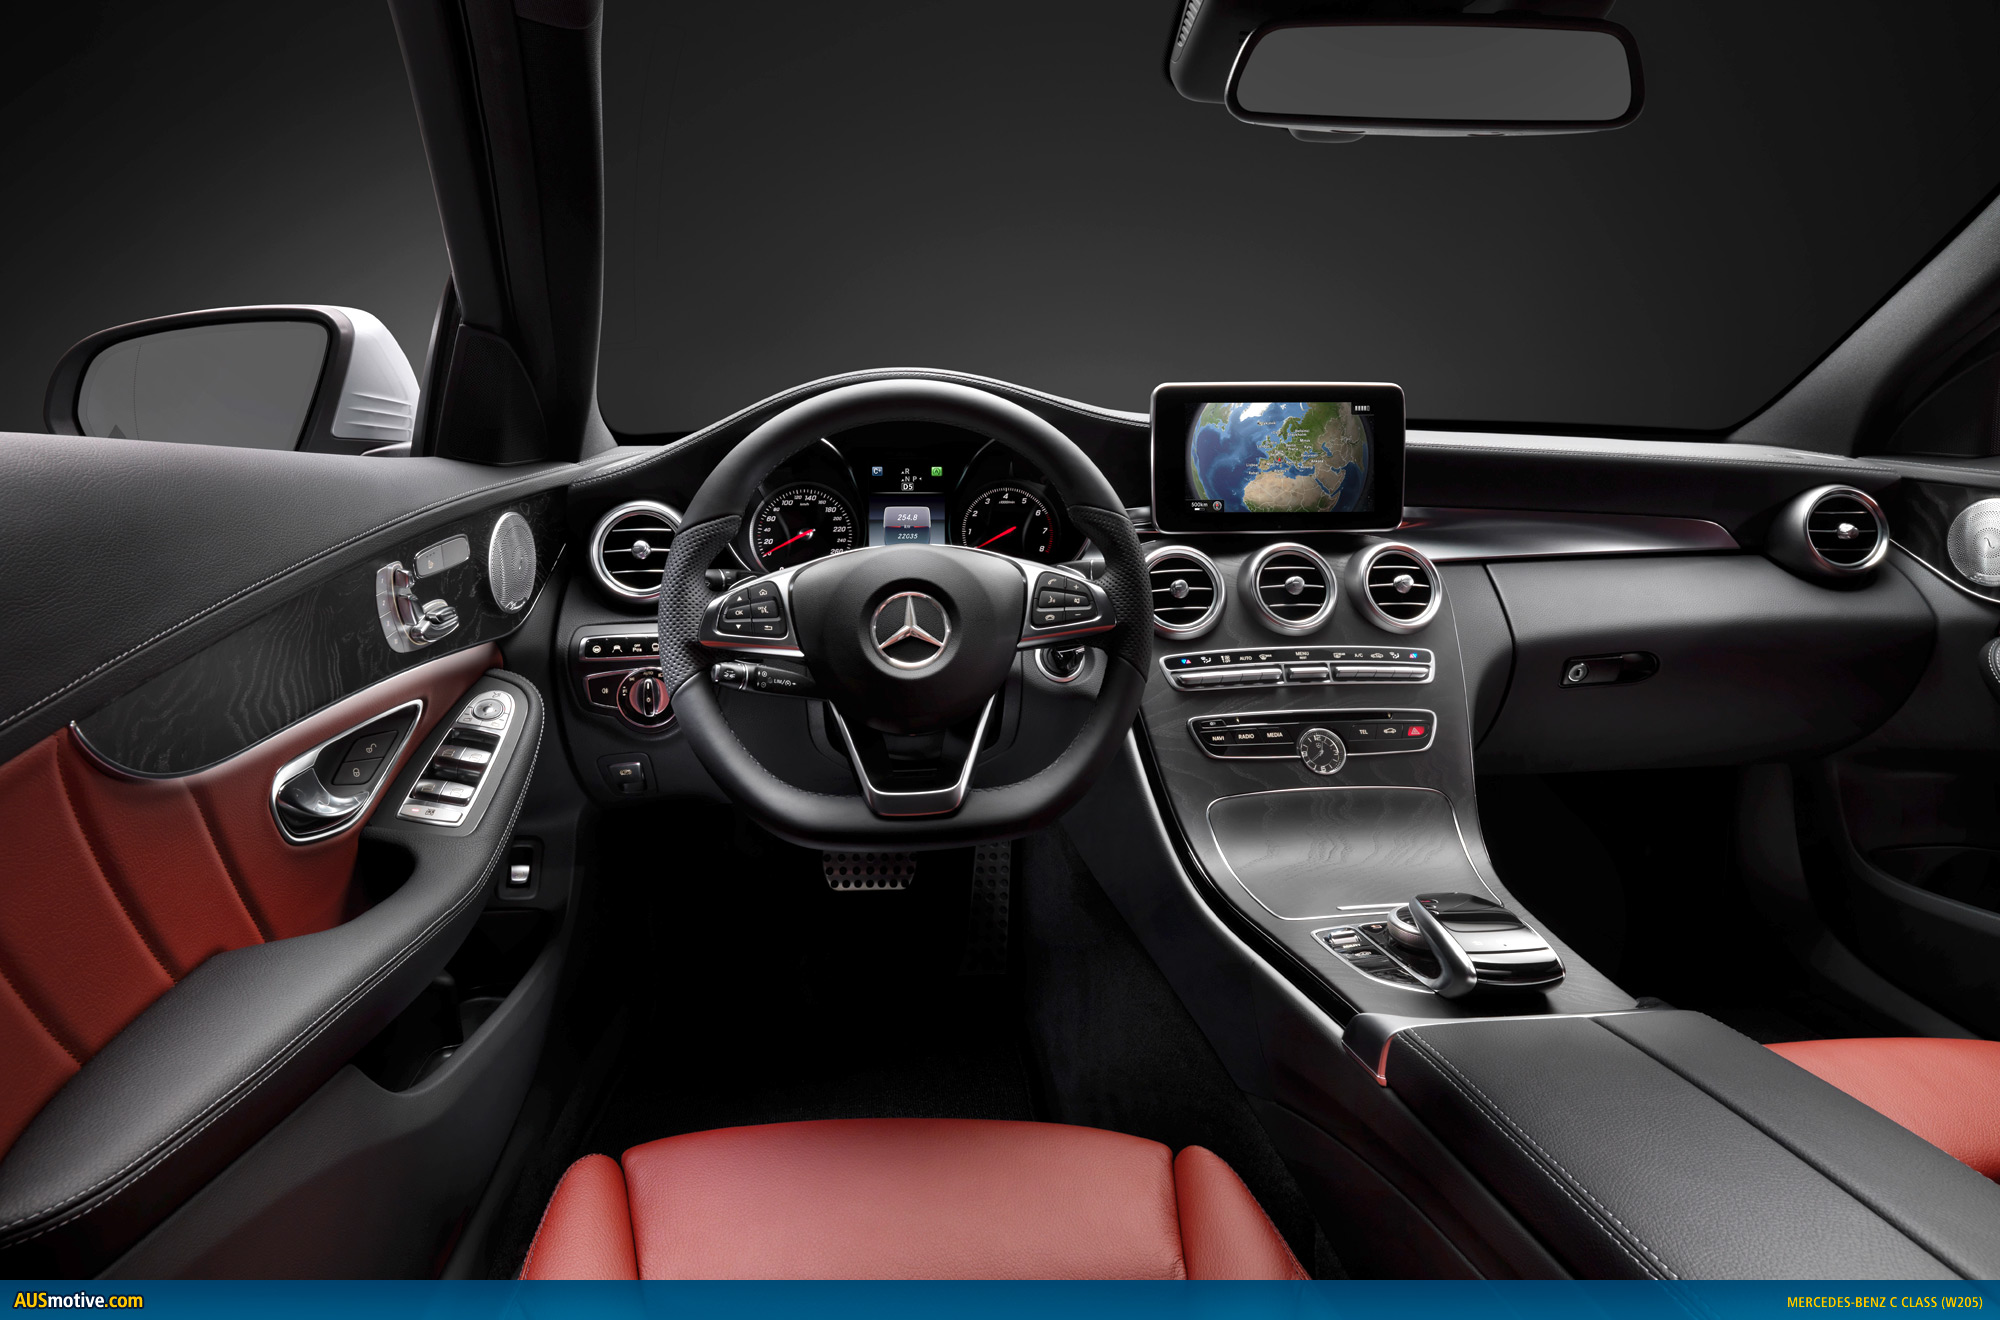 2014 mercedes benz c class images leaked for Inside mercedes benz